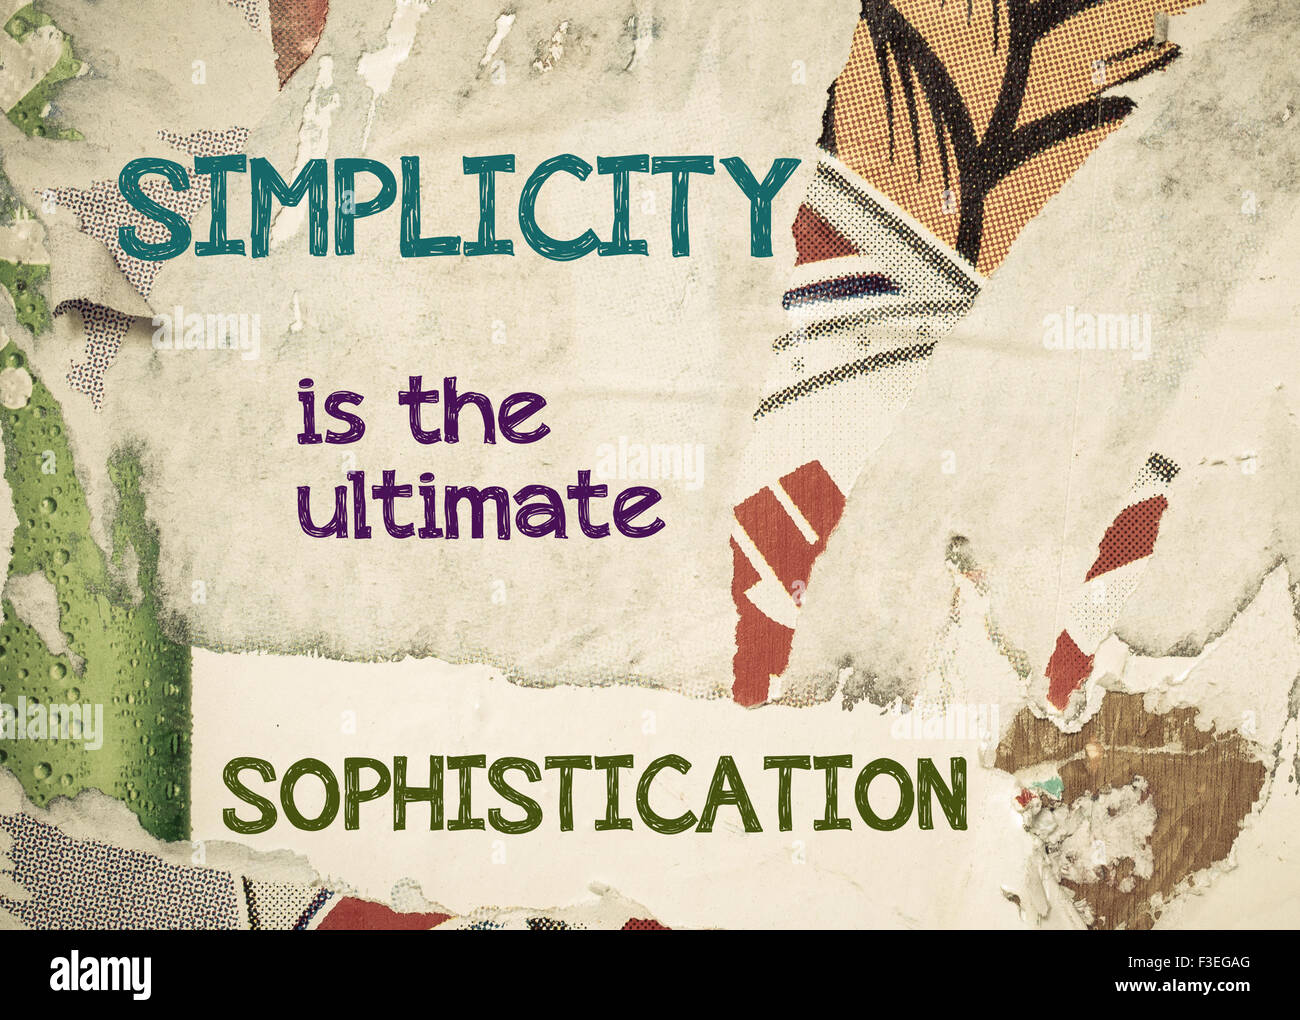 Simplicity is the Ultimate Sophistication- Inspirational message written on vintage grunge background with Old Torn - Stock Image